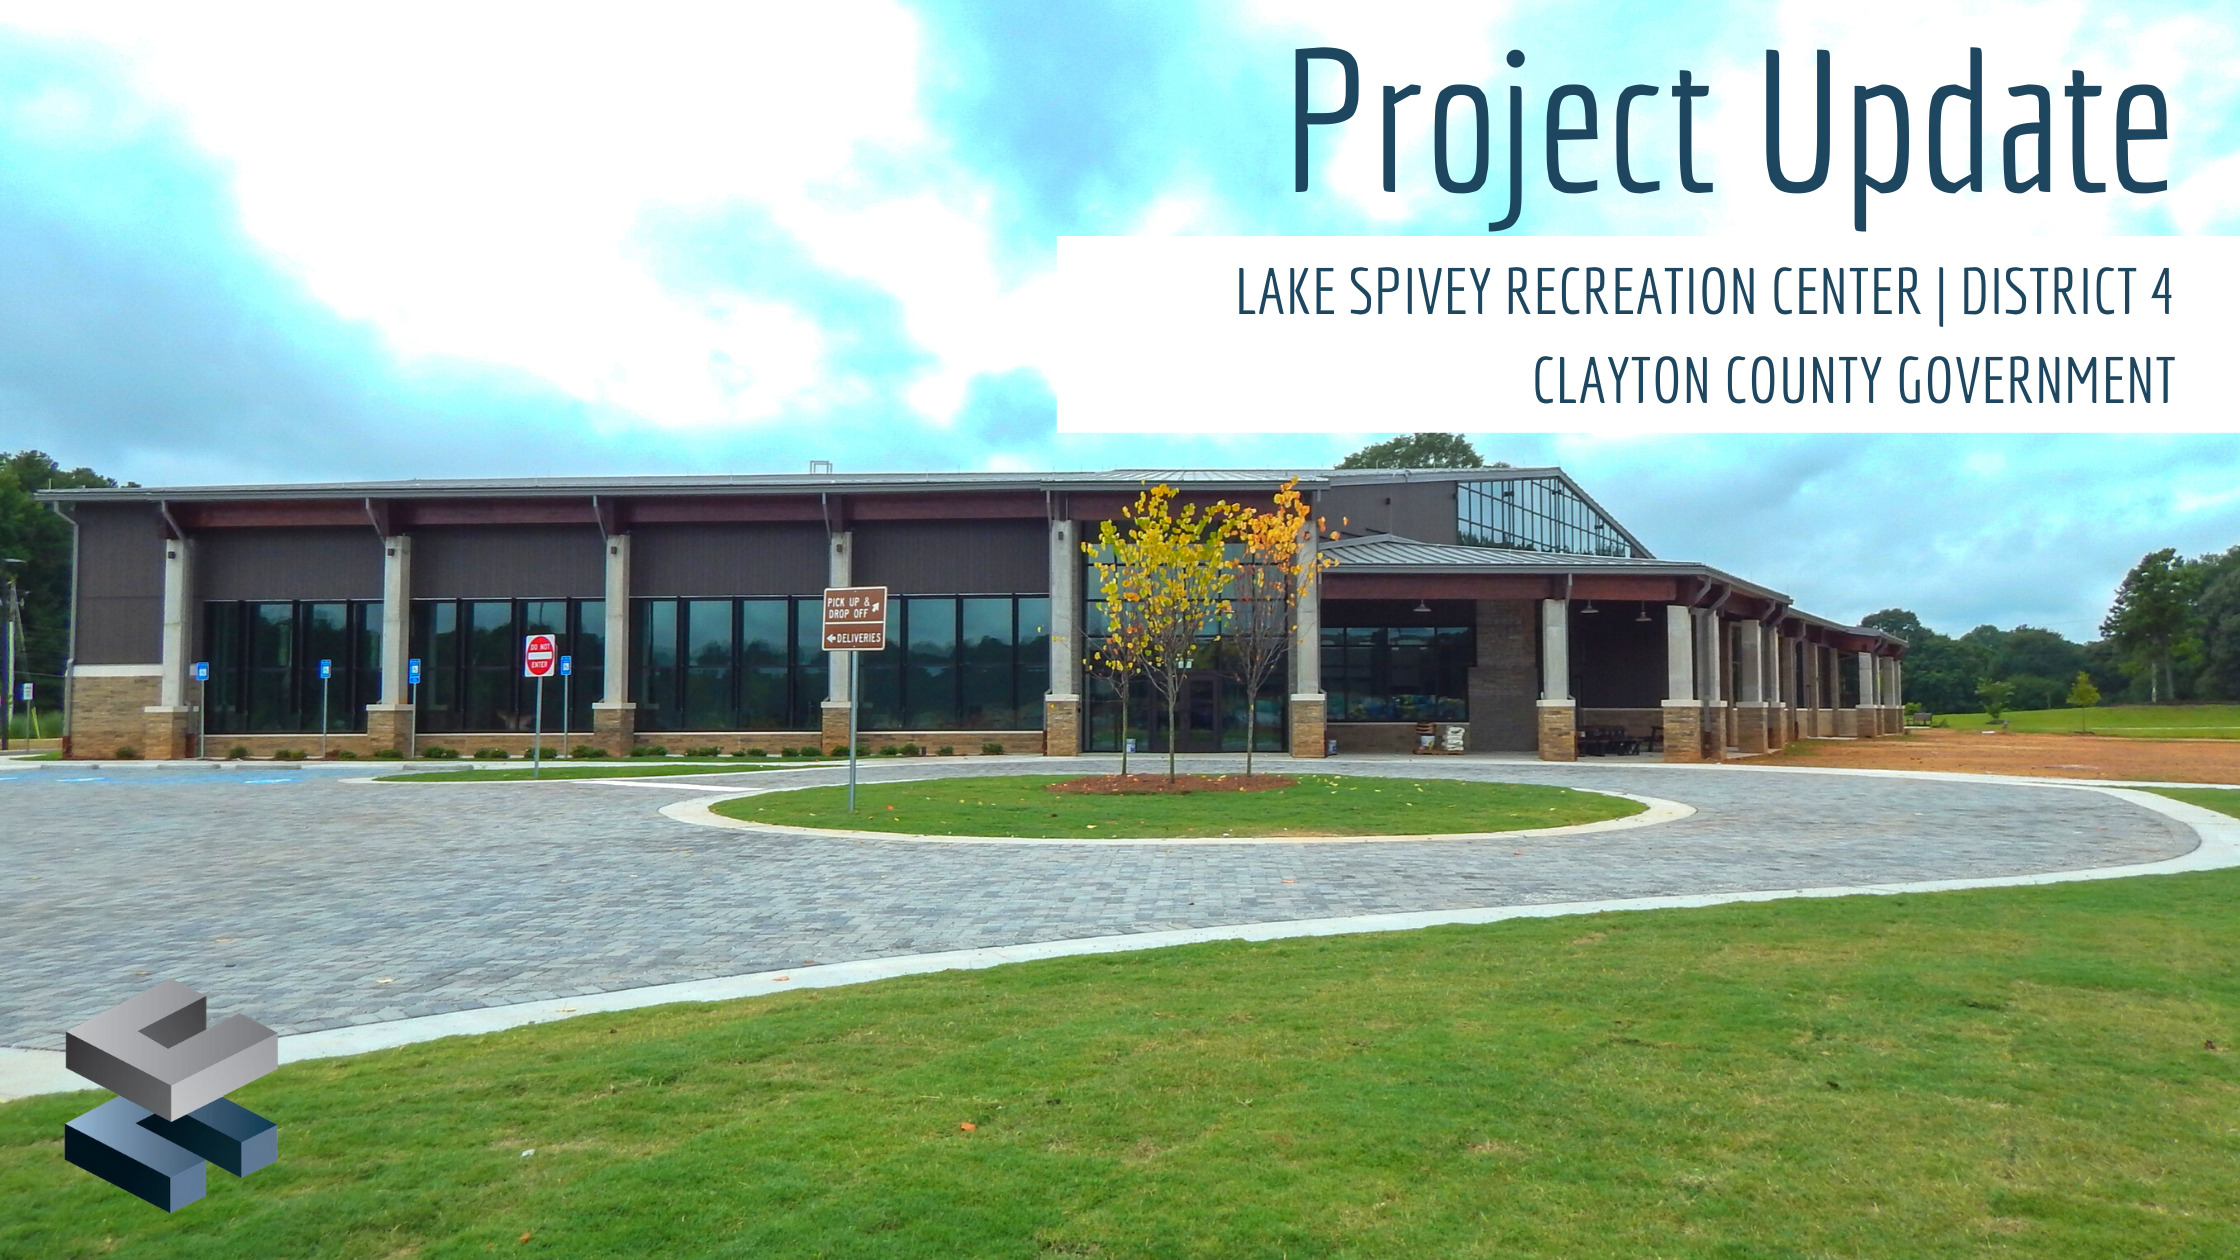 Project Update: Lake Spivey Recreation Center